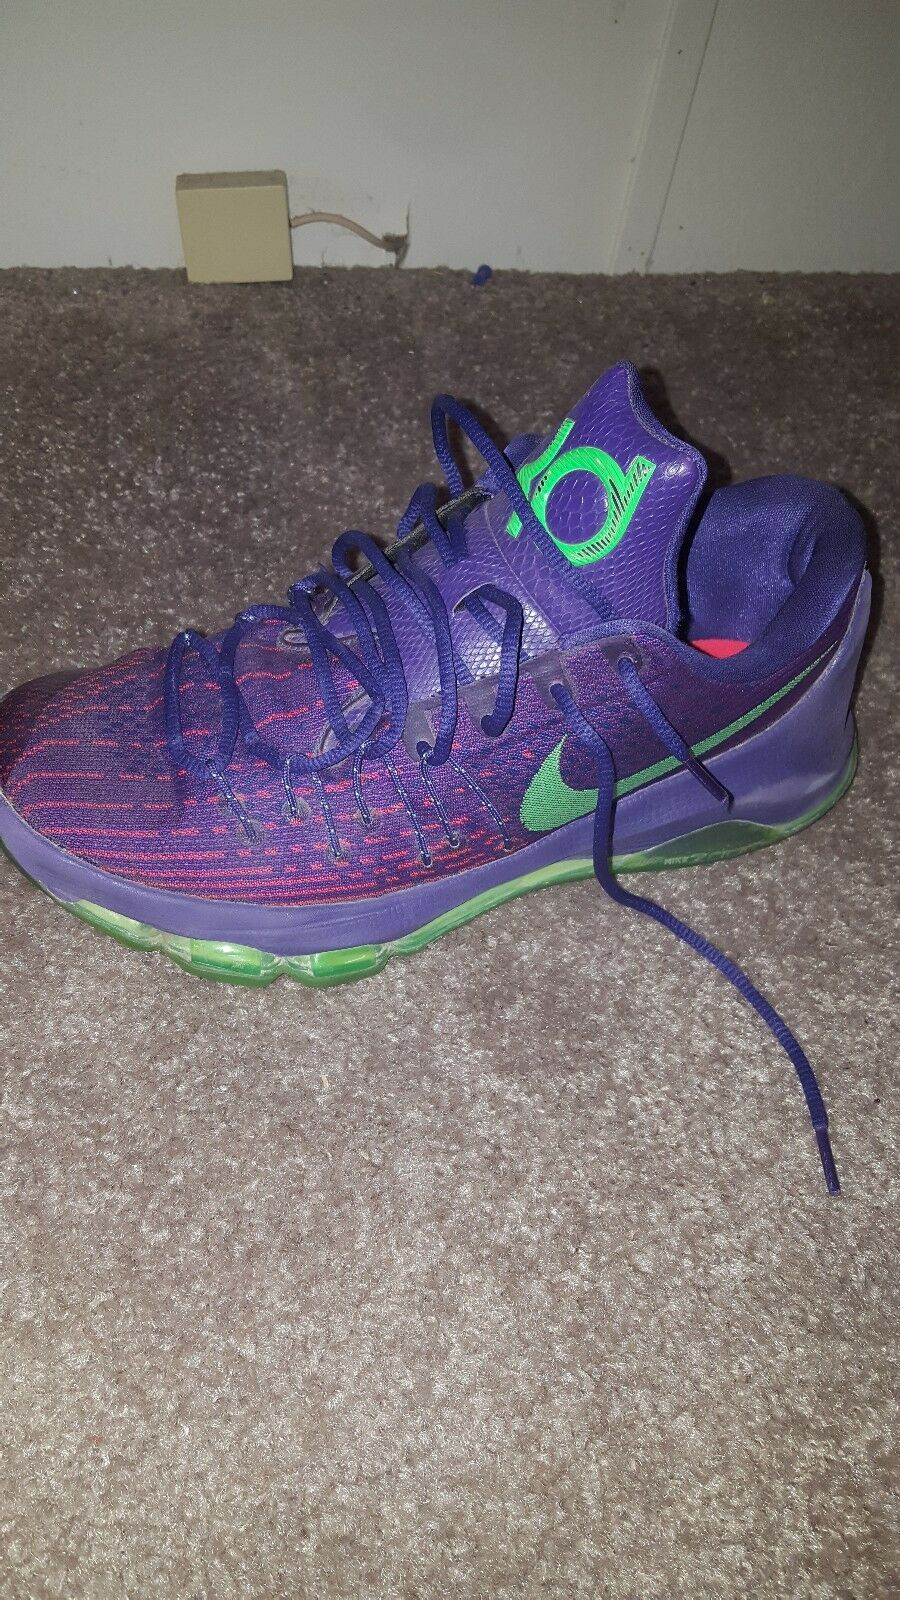 official photos 04840 59a1f MEN'S NIKE KD 8 VIII KEVIN KEVIN KEVIN DURANT SHOES purple ...